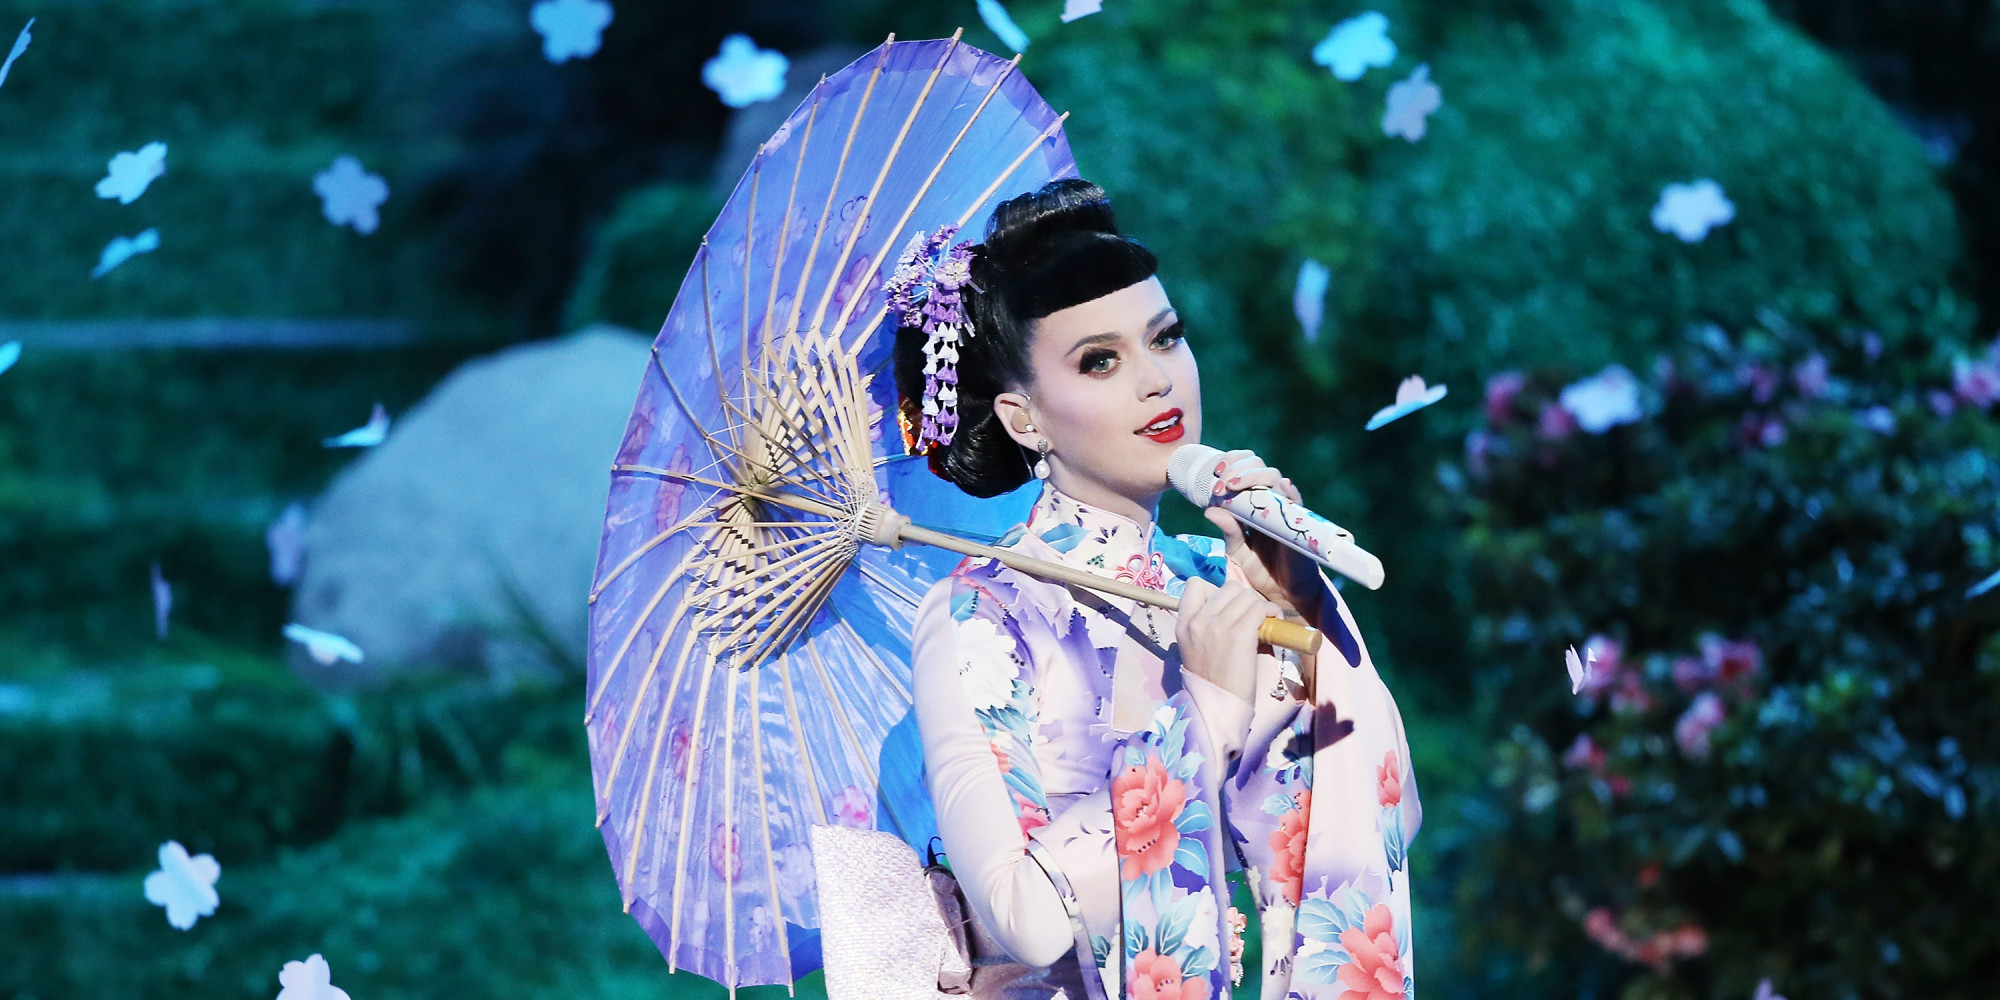 Cultural Appropriation 101 Featuring Geisha Katy Perry And The